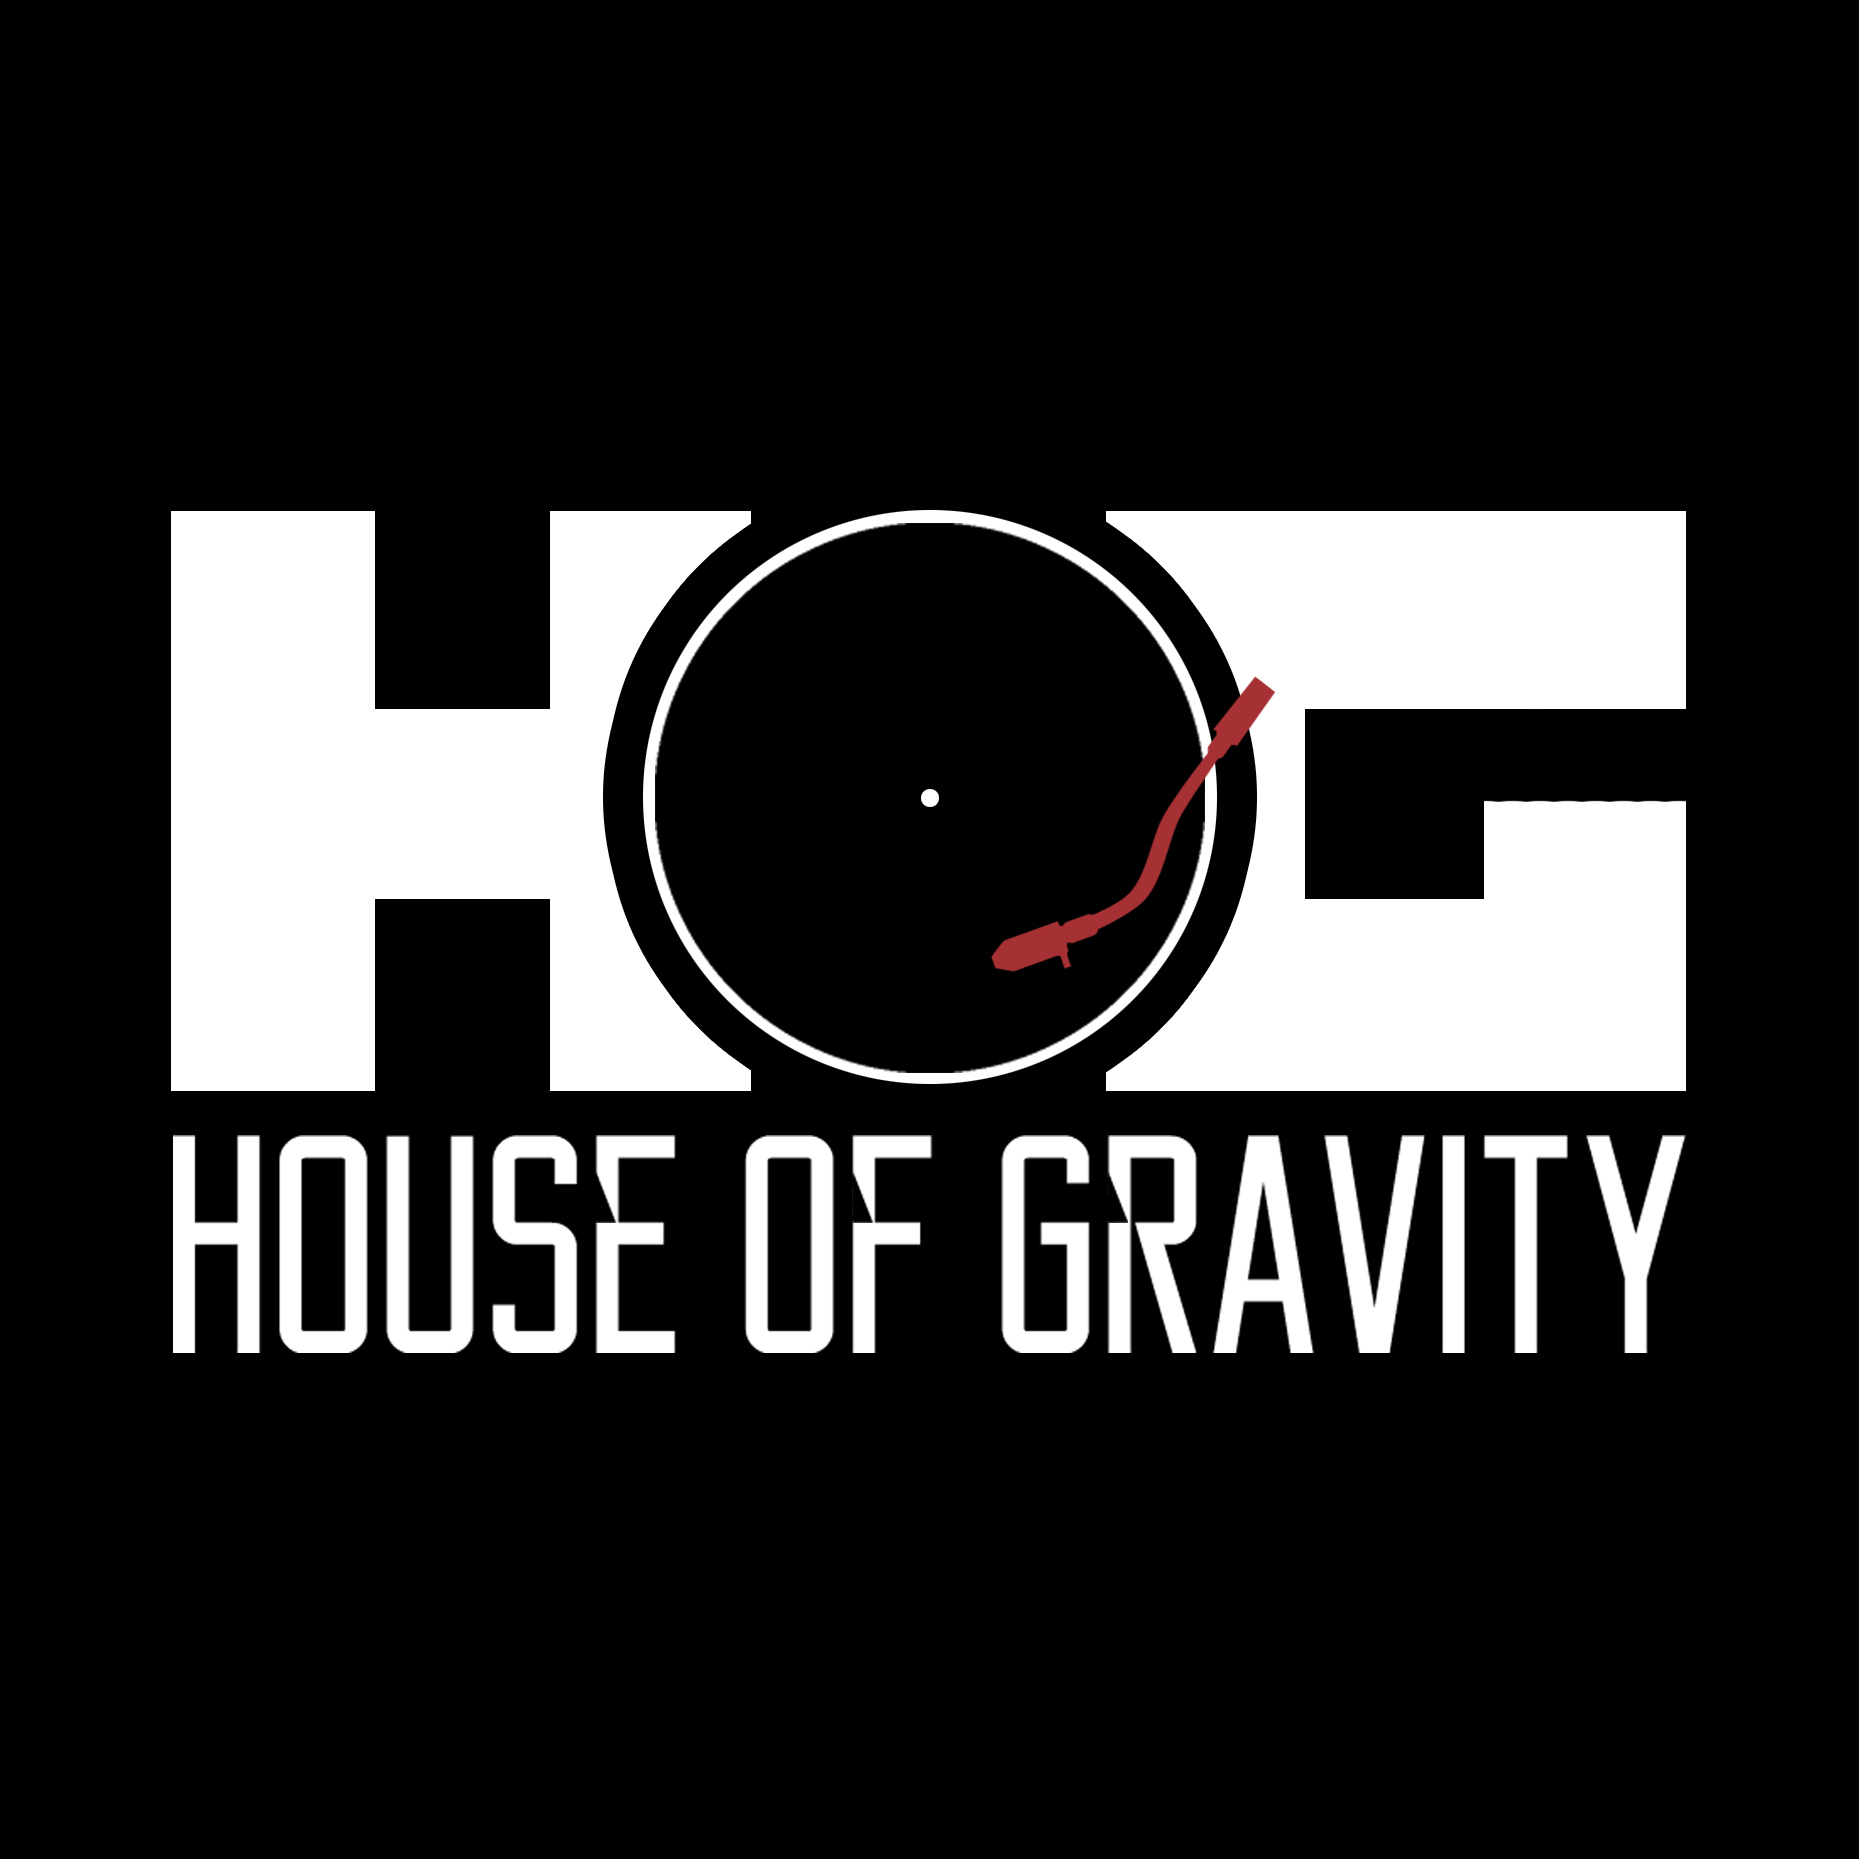 Redemption - House of Gravity